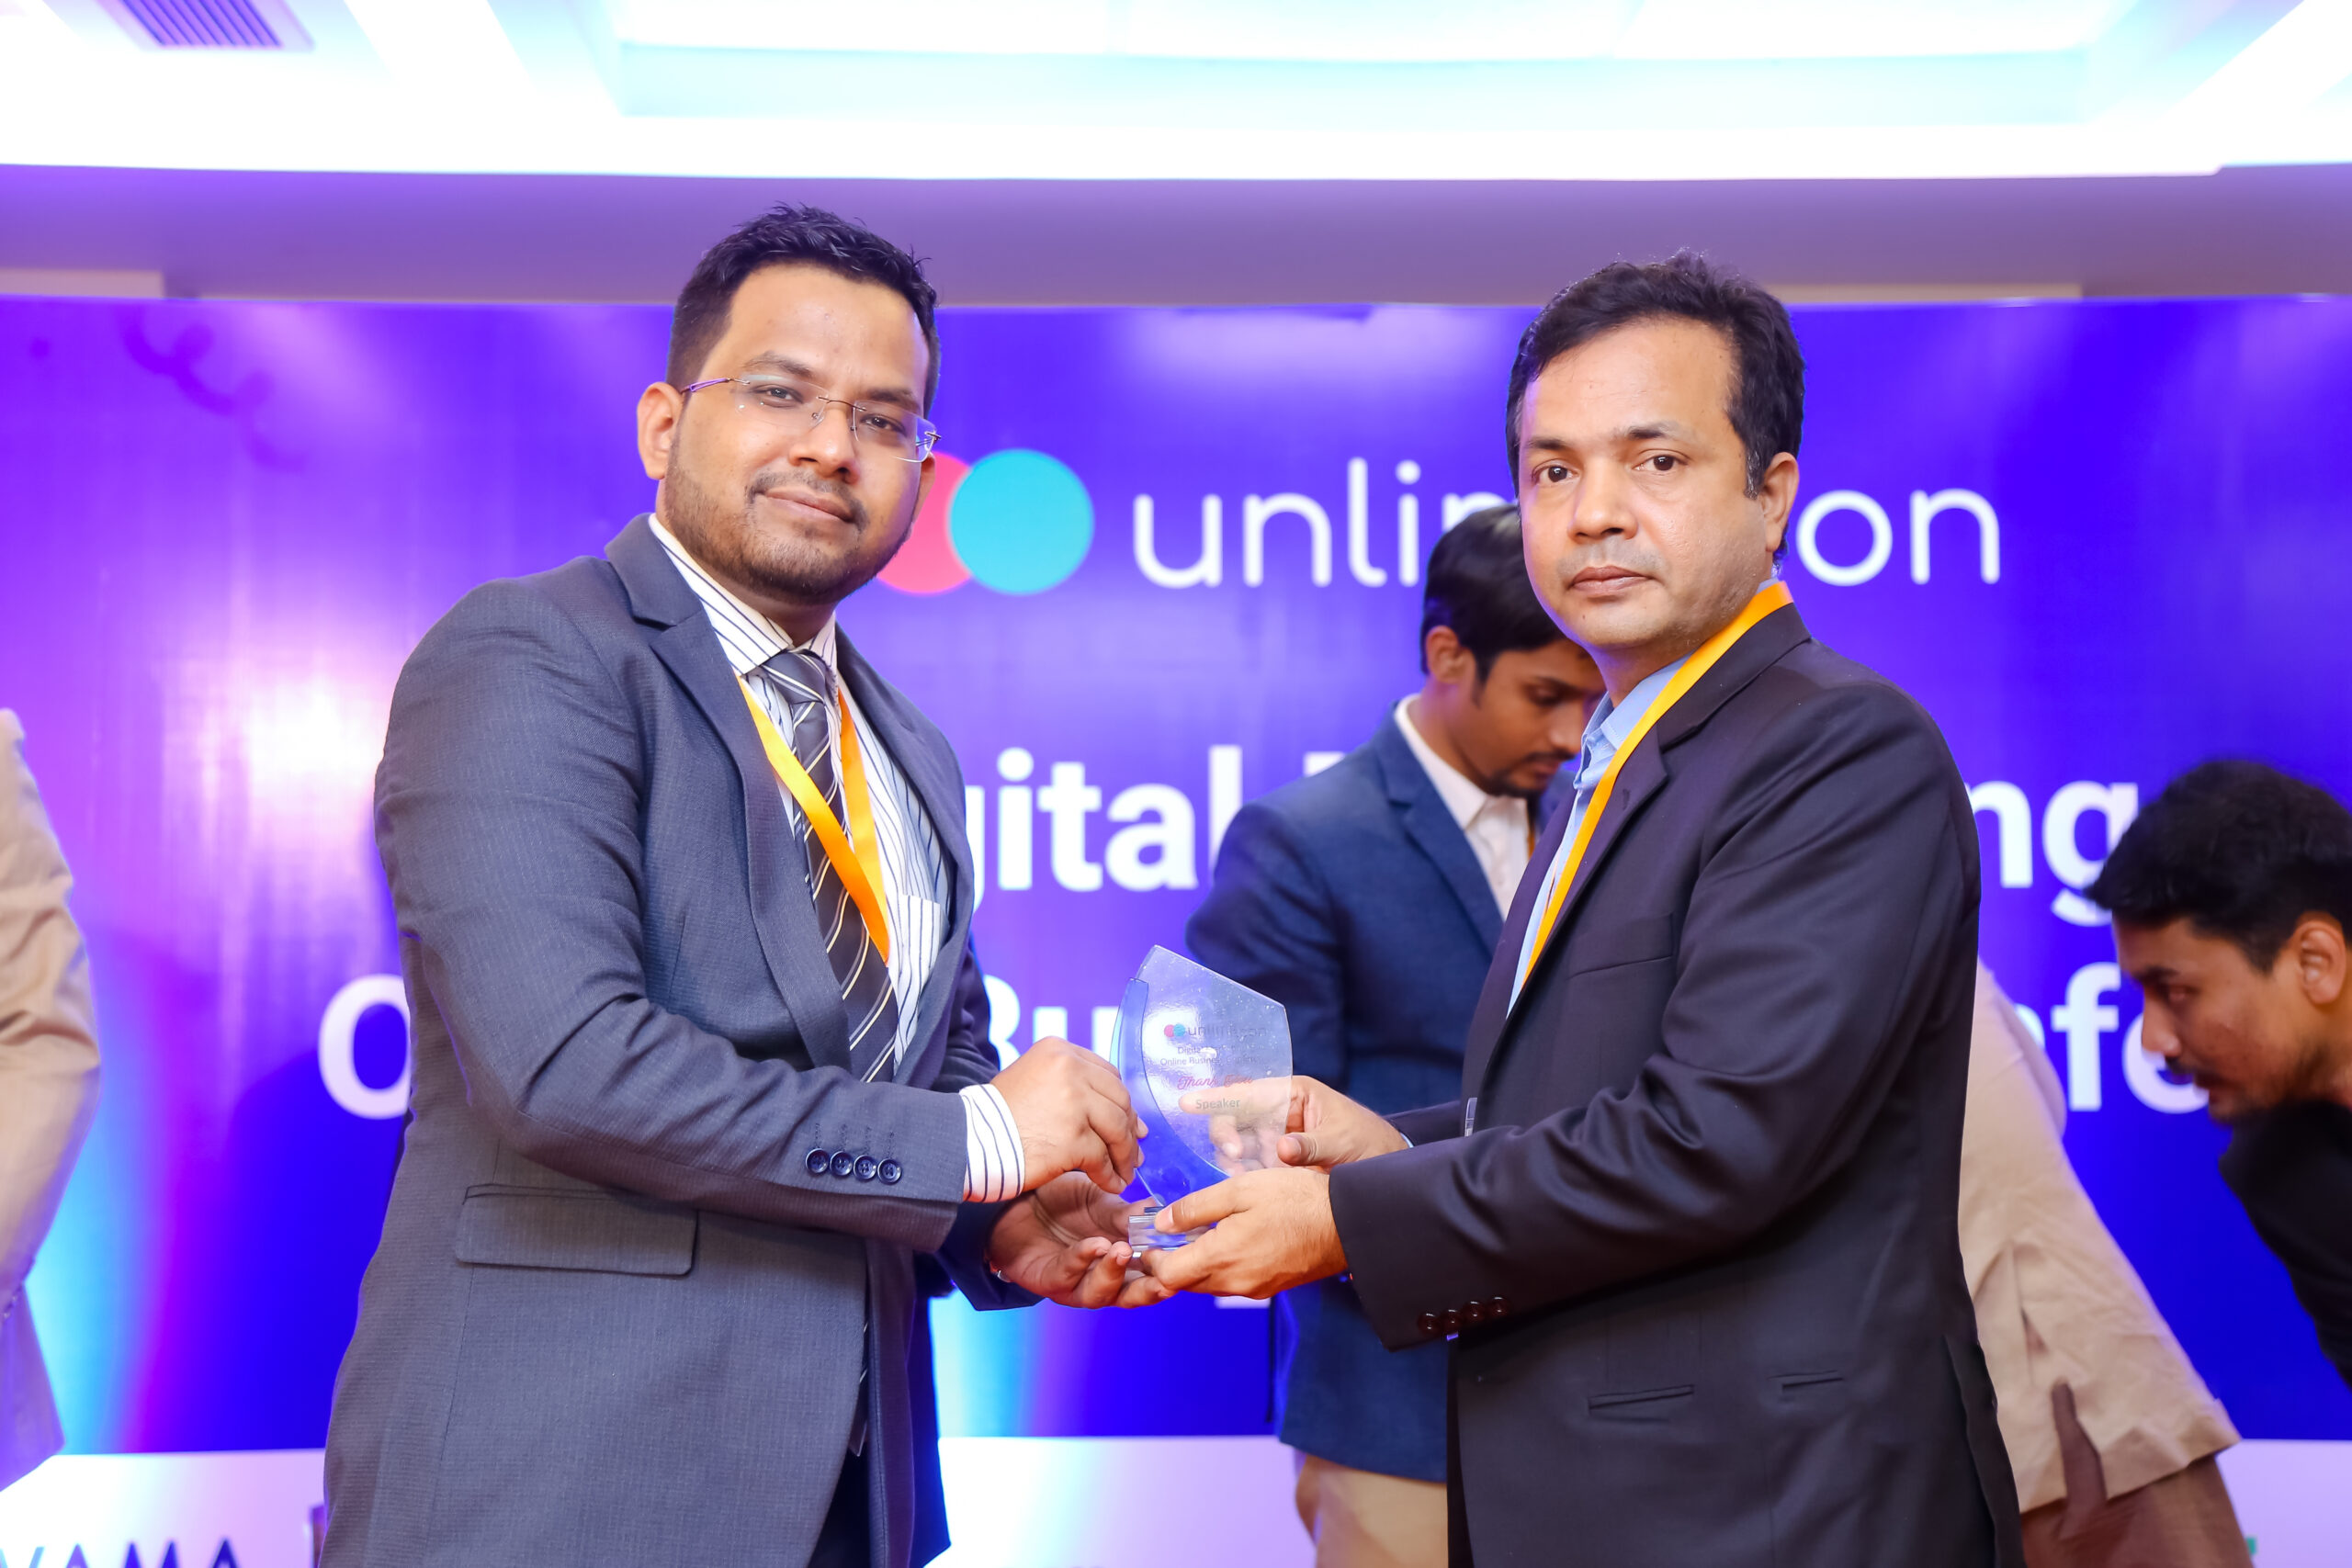 Faisal Mustafa Received Award as Speaker in 2019 from UNLIMITCON at Digital Marketing Online Business Conference